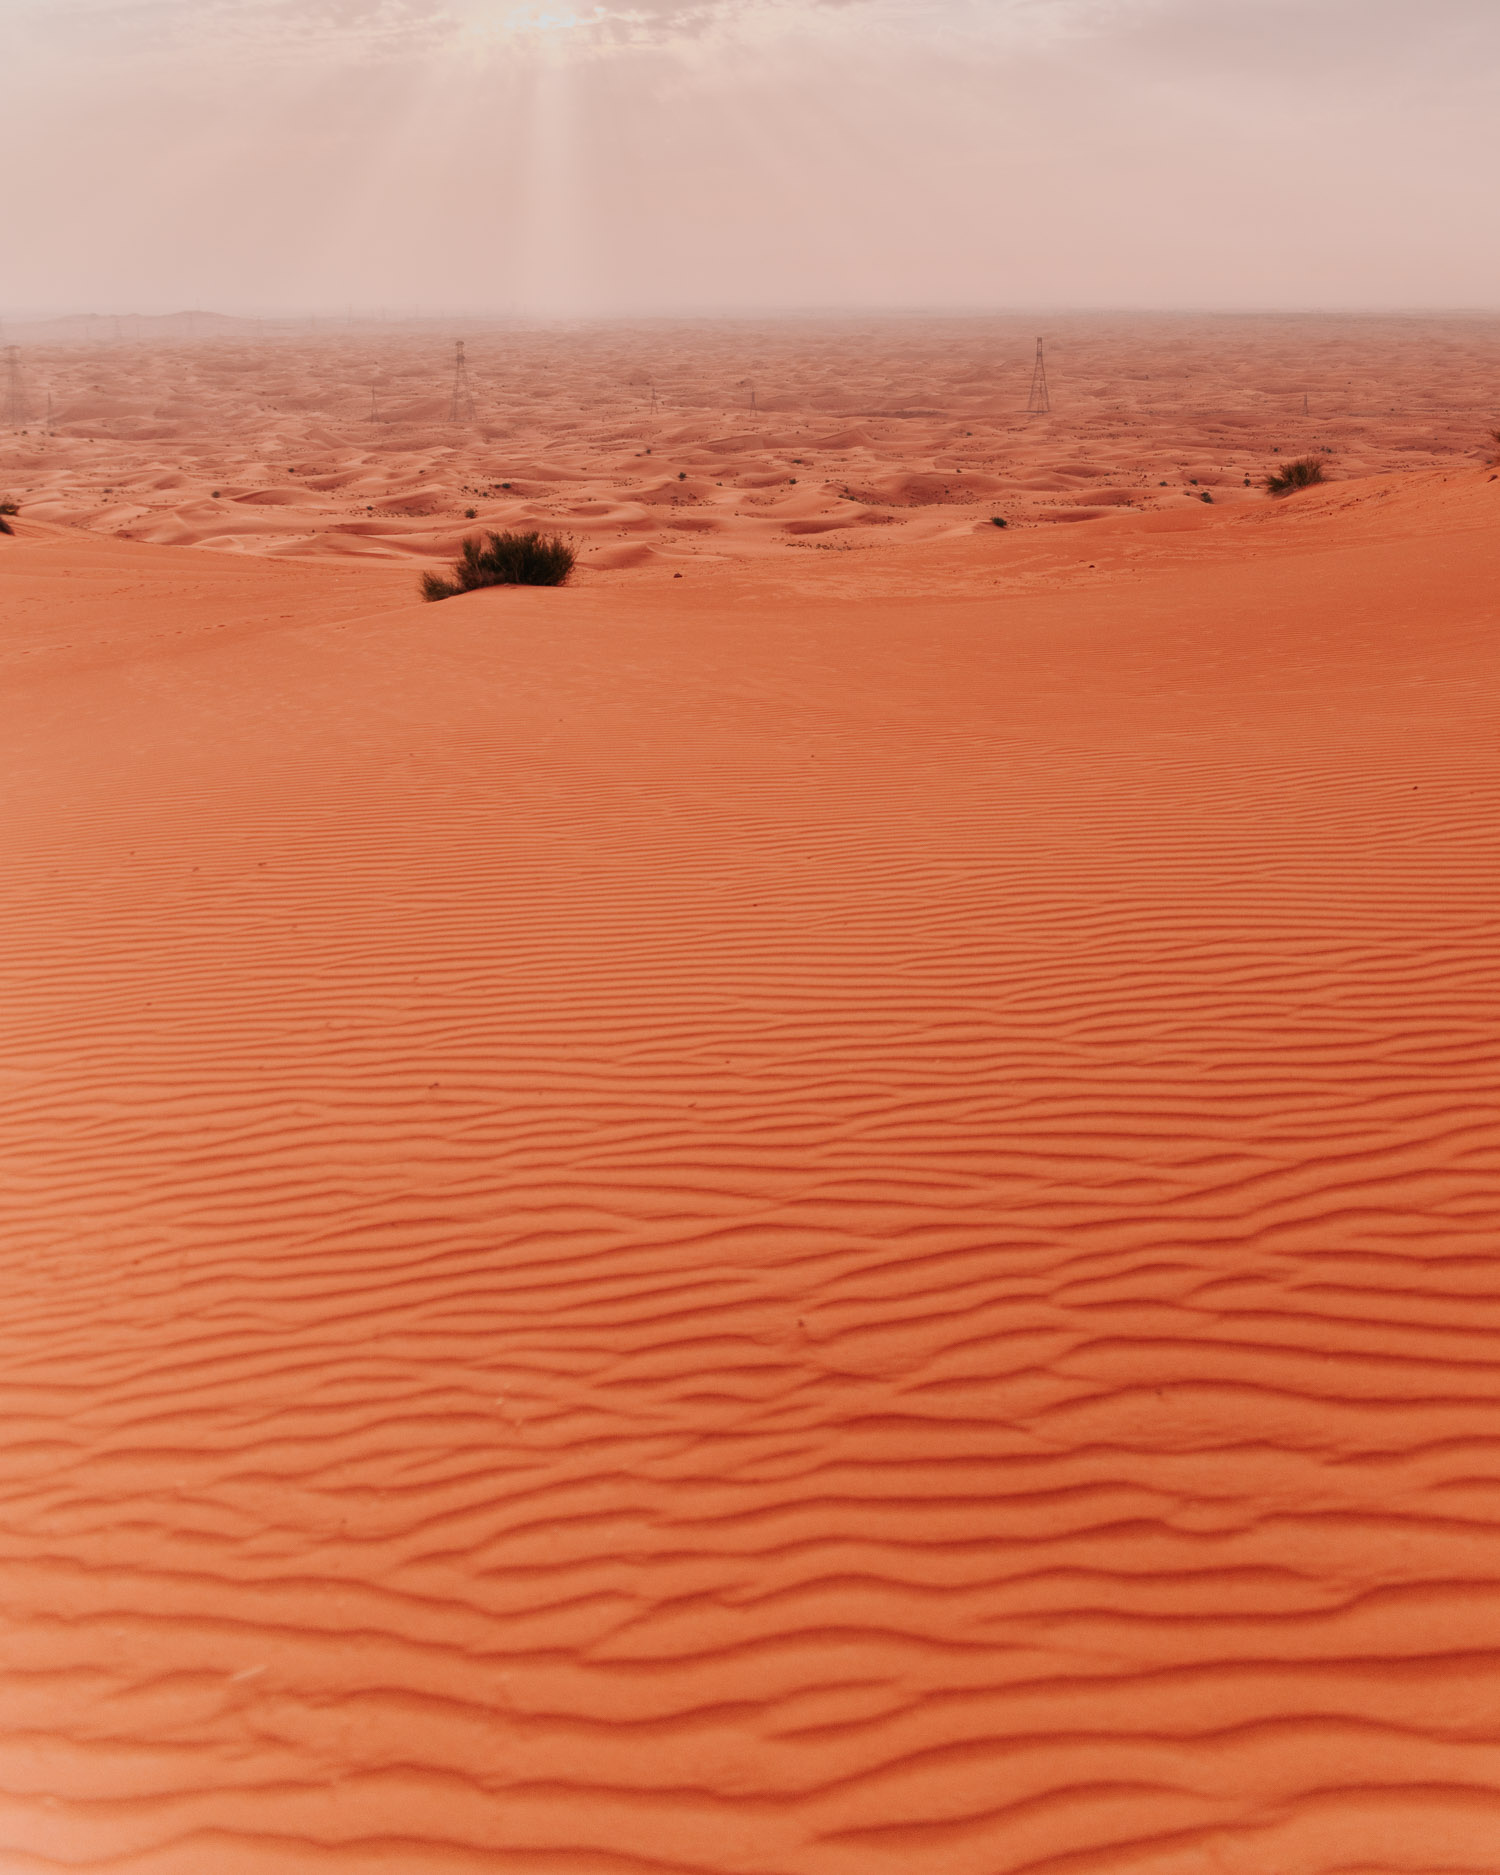 Saffron-colored sand dunes in Mleiha Desert